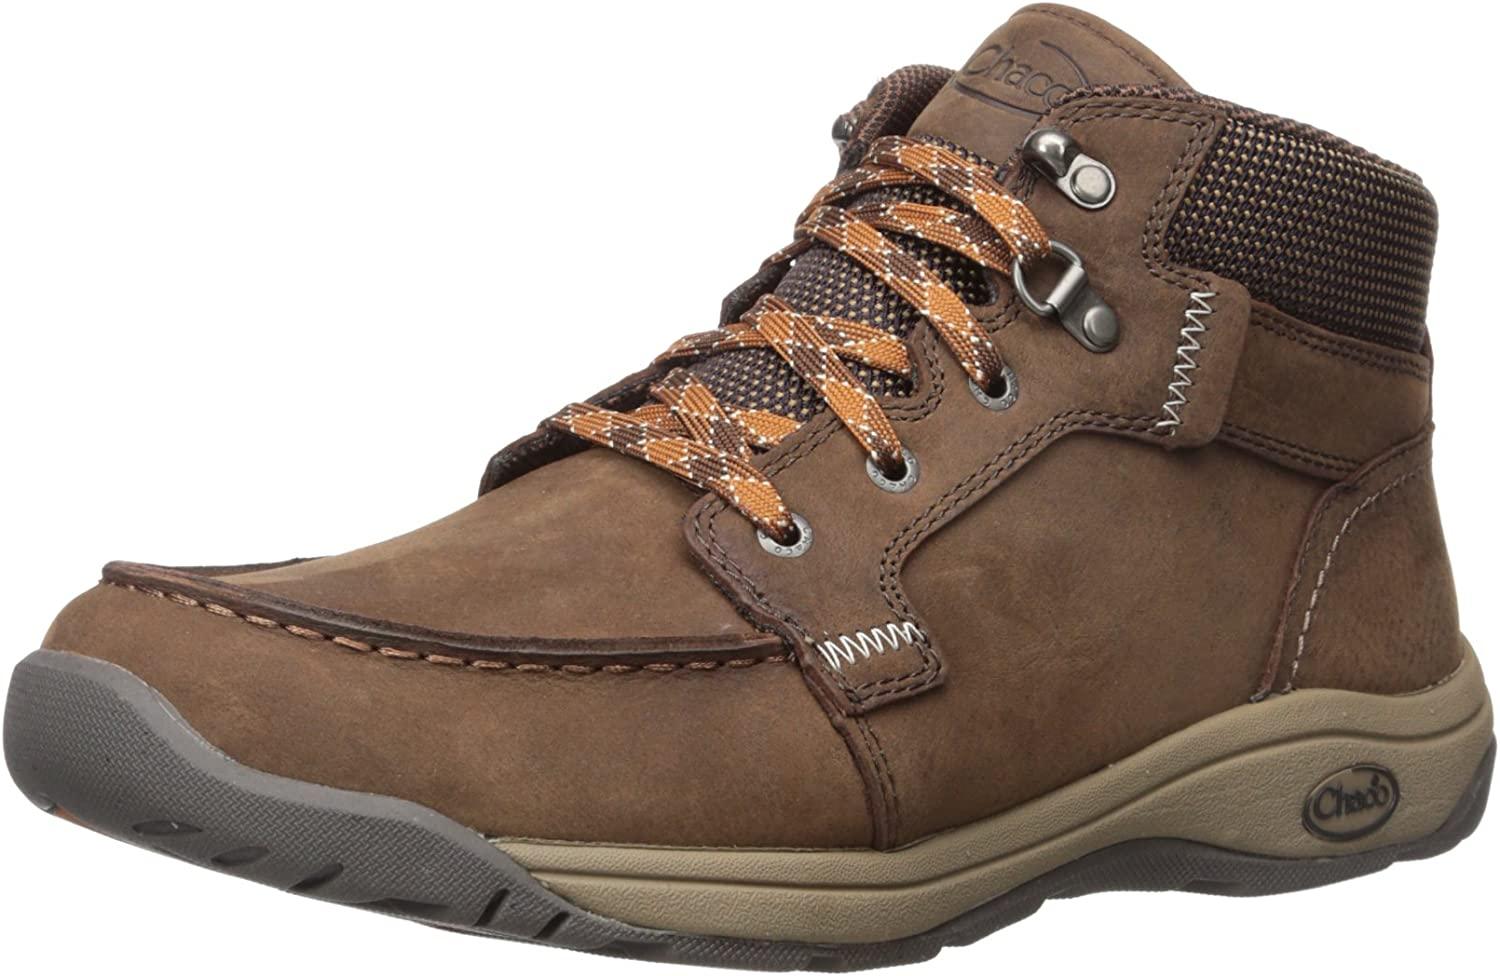 Chaco Men's Jaeger Hiking Stiefel